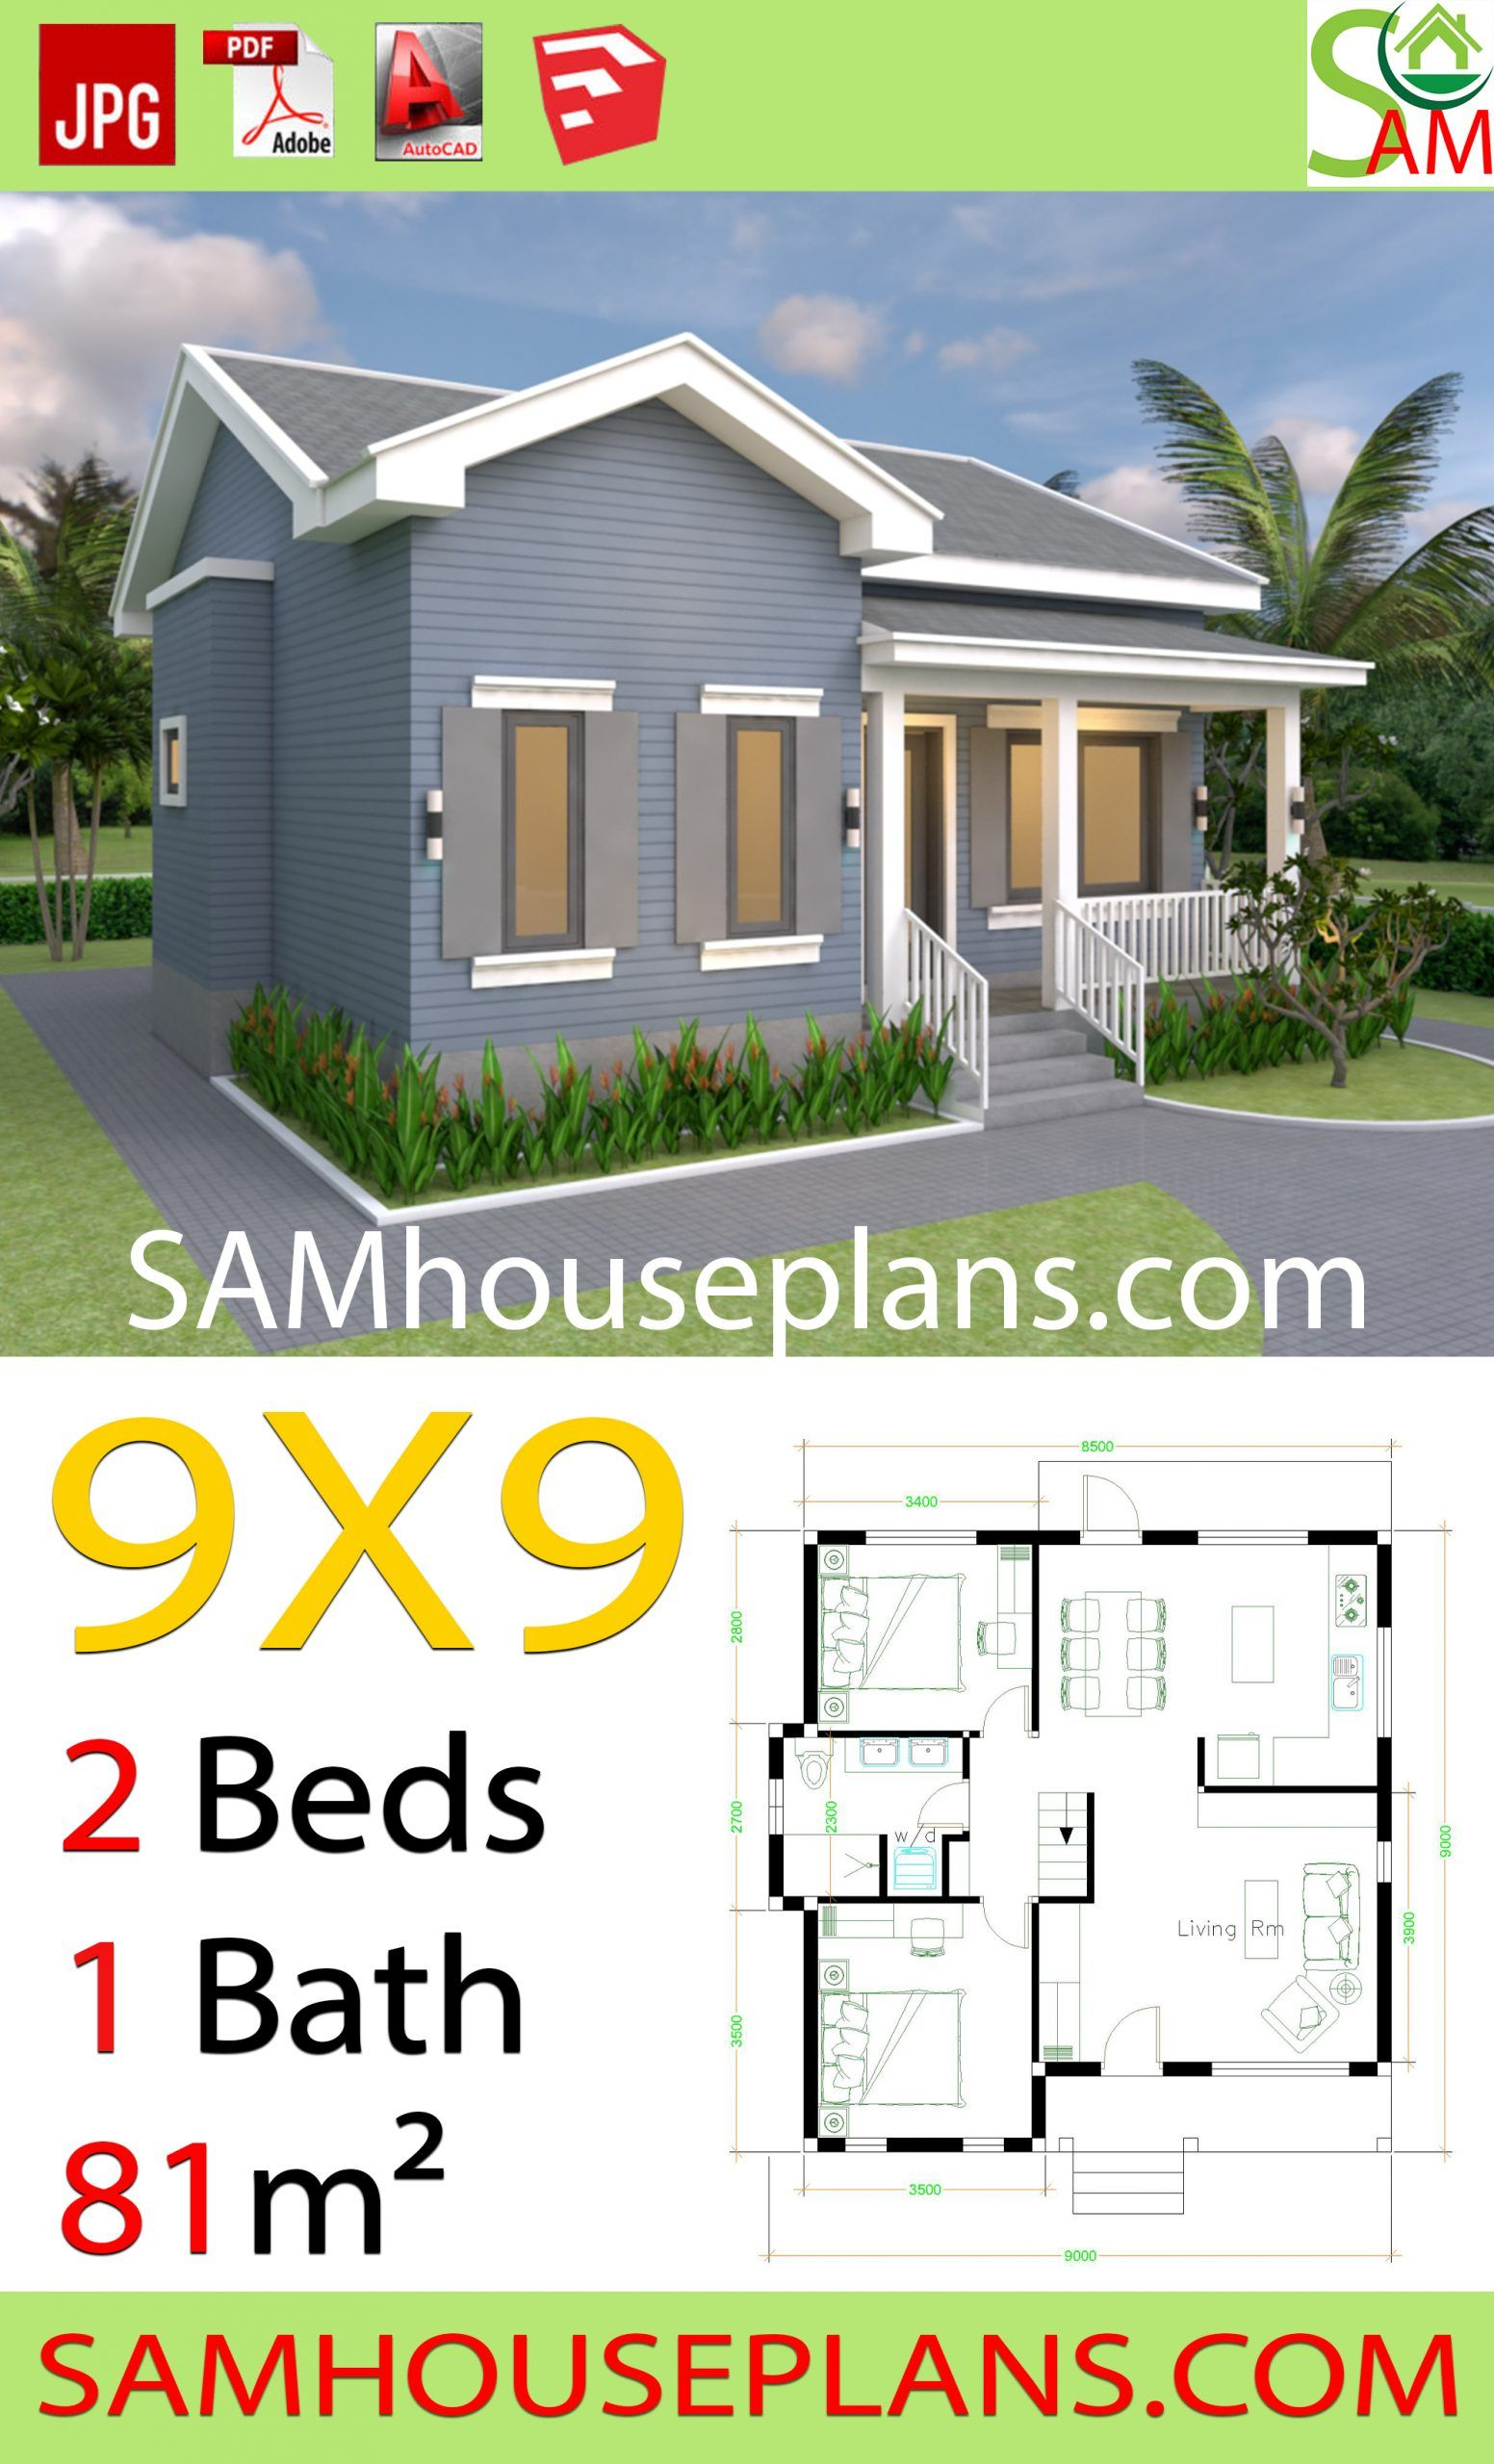 House Plans 9x9 With 2 Bedrooms Gable Roof House Plans 3d In 2020 Gable Roof House Affordable House Plans Diy House Plans